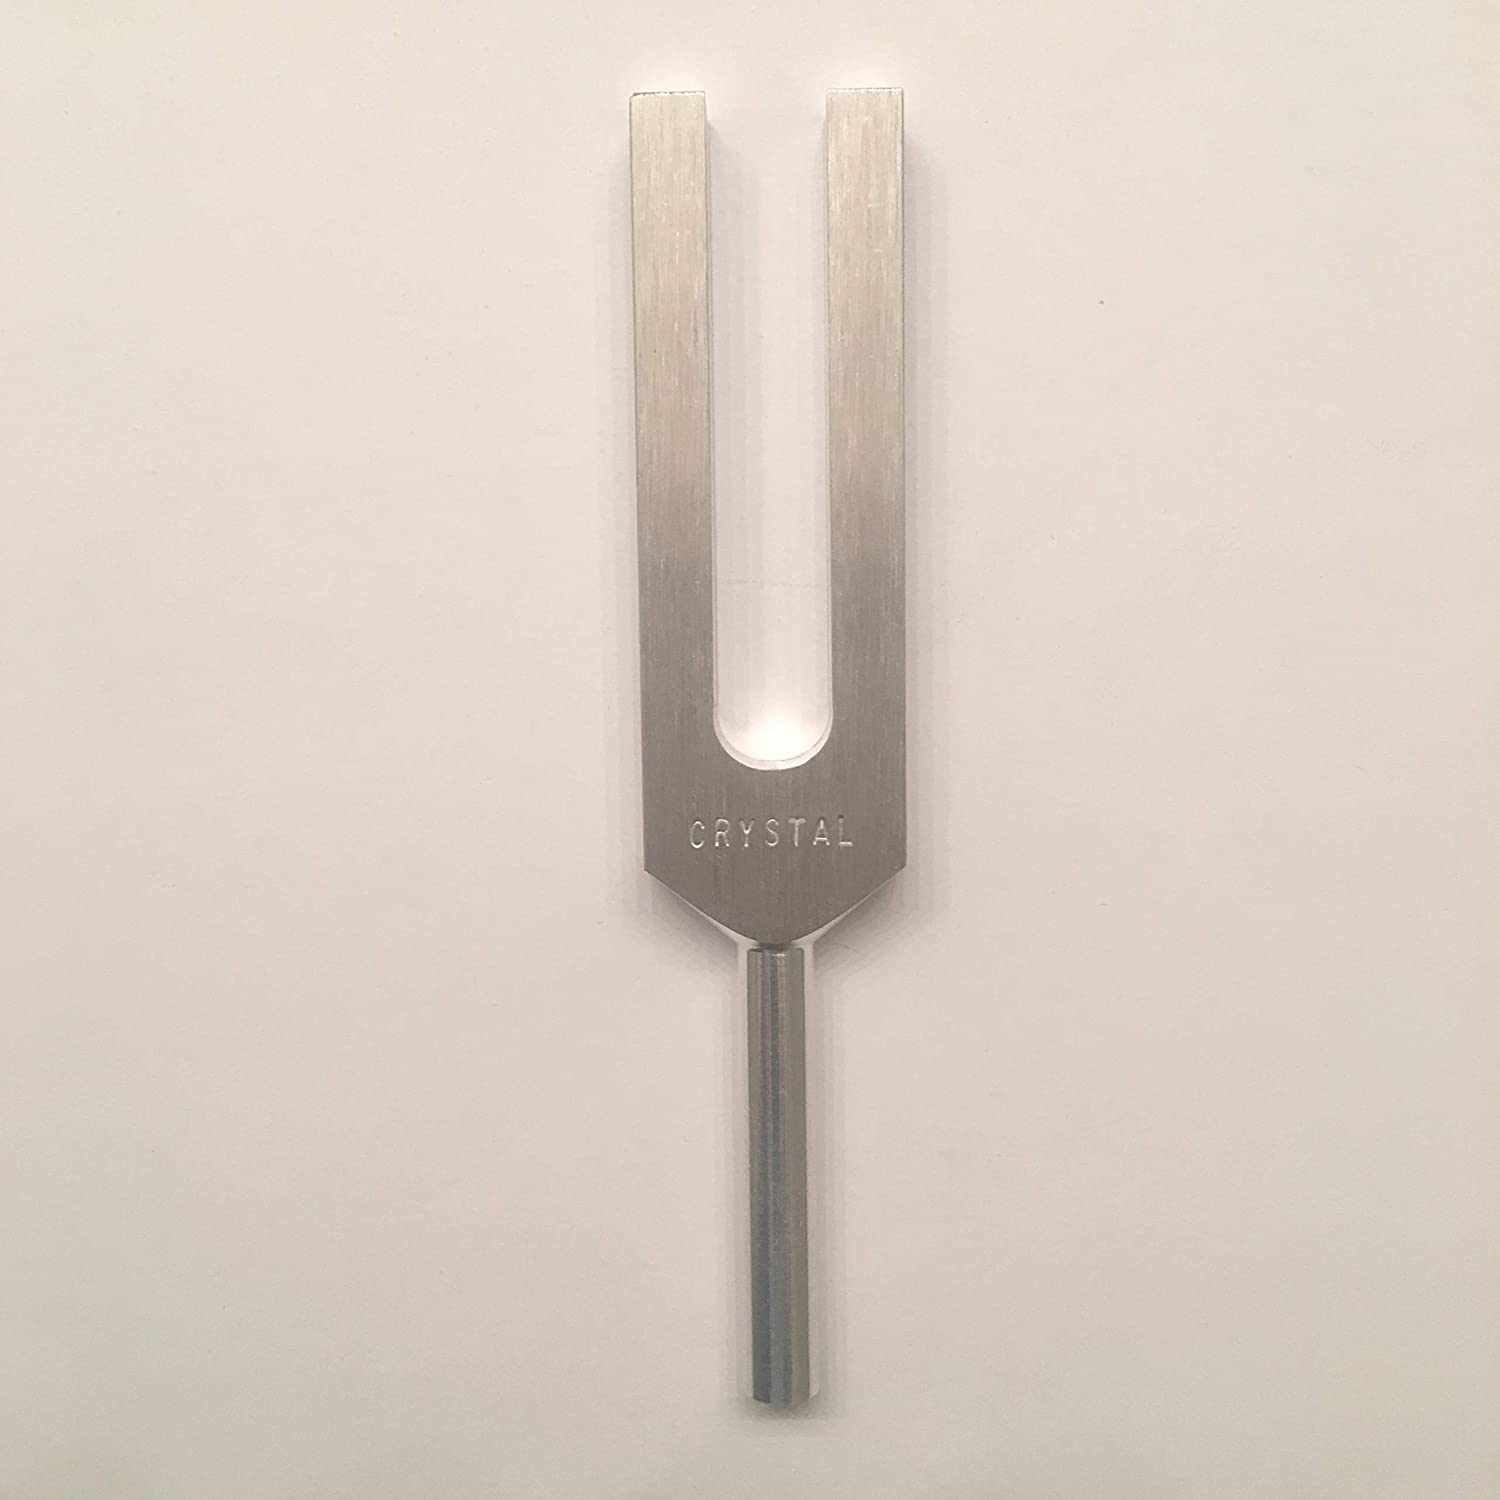 Jonathan Goldman/'s Crystal Resonator Tuning Fork